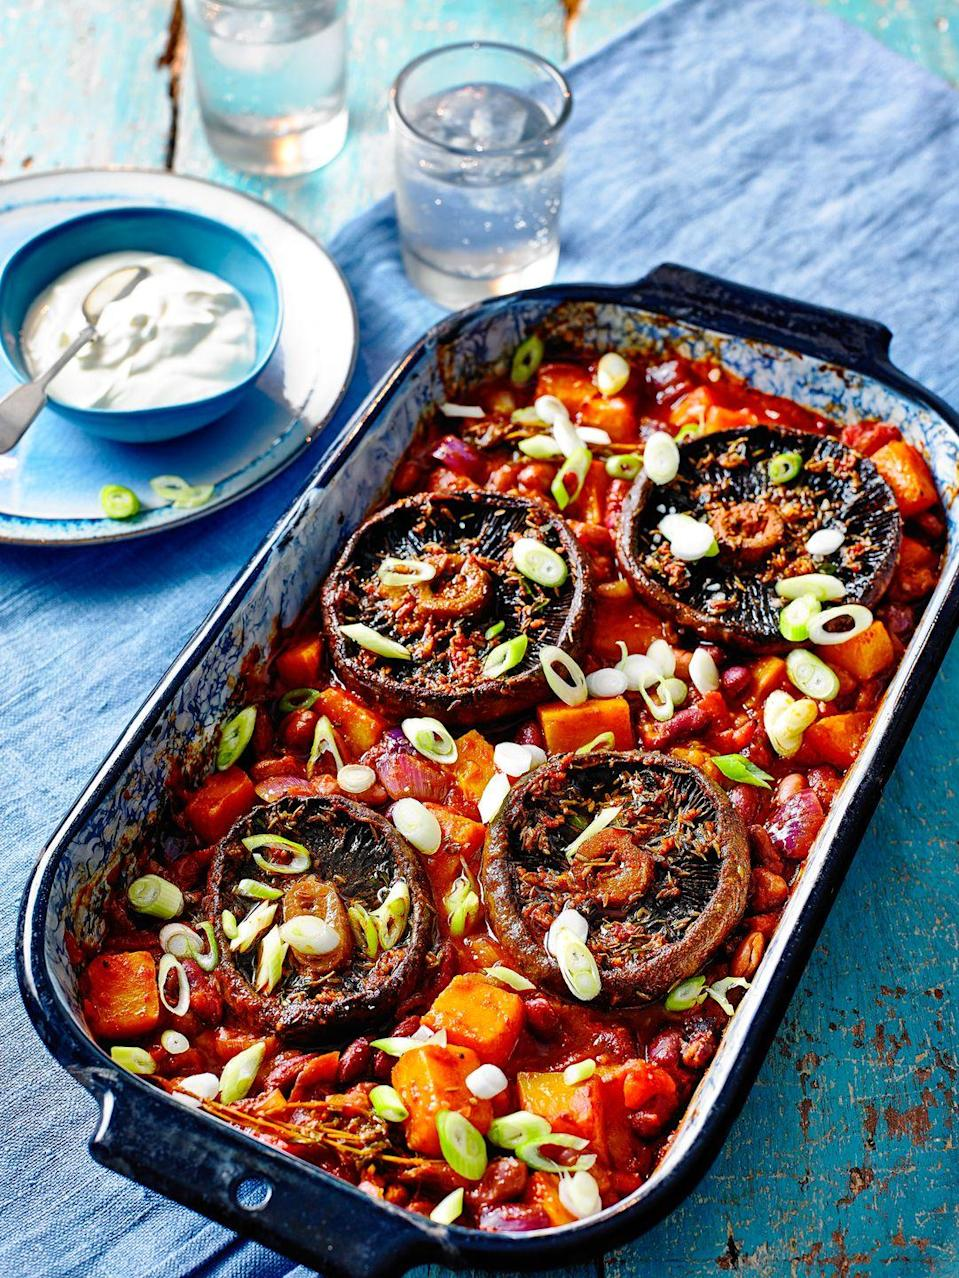 """<p>Swap the butternut squash for sweet potato, if you prefer. You could also add extra veg to the beans to bulk out the dish to serve more – peppers or diced aubergine would be delicious.</p><p><strong>Recipe: <a href=""""https://www.goodhousekeeping.com/uk/food/recipes/a29205109/portobello-mushroom-traybake/"""" rel=""""nofollow noopener"""" target=""""_blank"""" data-ylk=""""slk:Baked Portobello mushrooms on Smoky Beans Traybake"""" class=""""link rapid-noclick-resp"""">Baked Portobello mushrooms on Smoky Beans Traybake</a></strong></p>"""